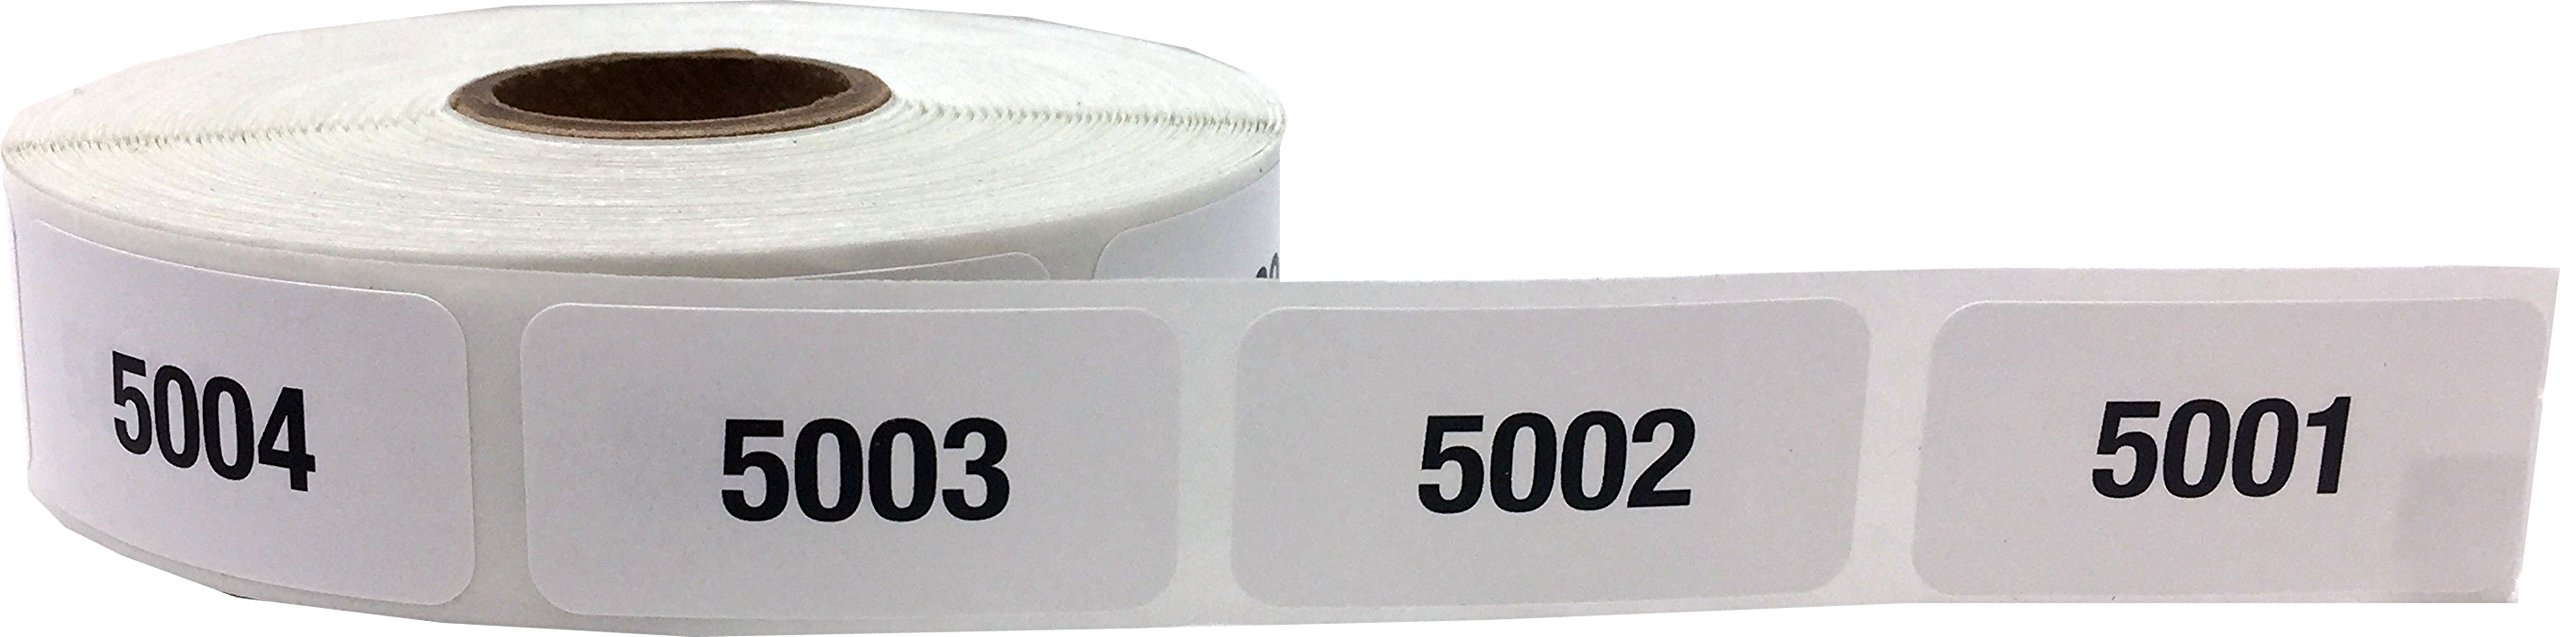 Consecutive Number Labels Bulk Pack Numbers 1 Through 10,000 White/Black .75 x 1.5 Rectangle Small Number Stickers For Inventory by InStockLabels.com (Image #8)